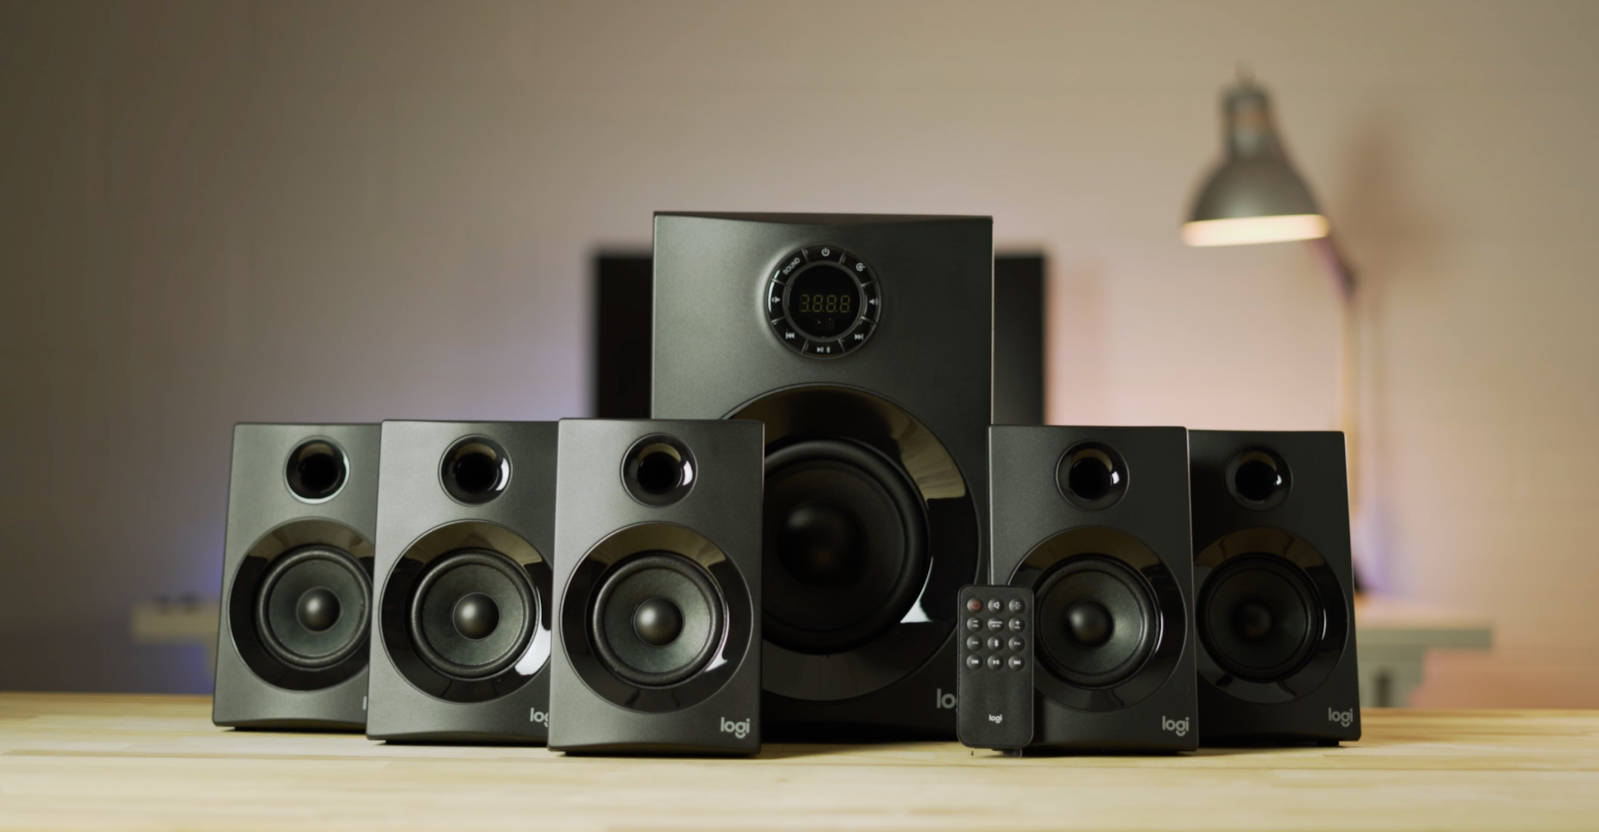 1e5189256c0 Logitech Z606 Review: An affordable 5.1 speaker system with Bluetooth  [Video]